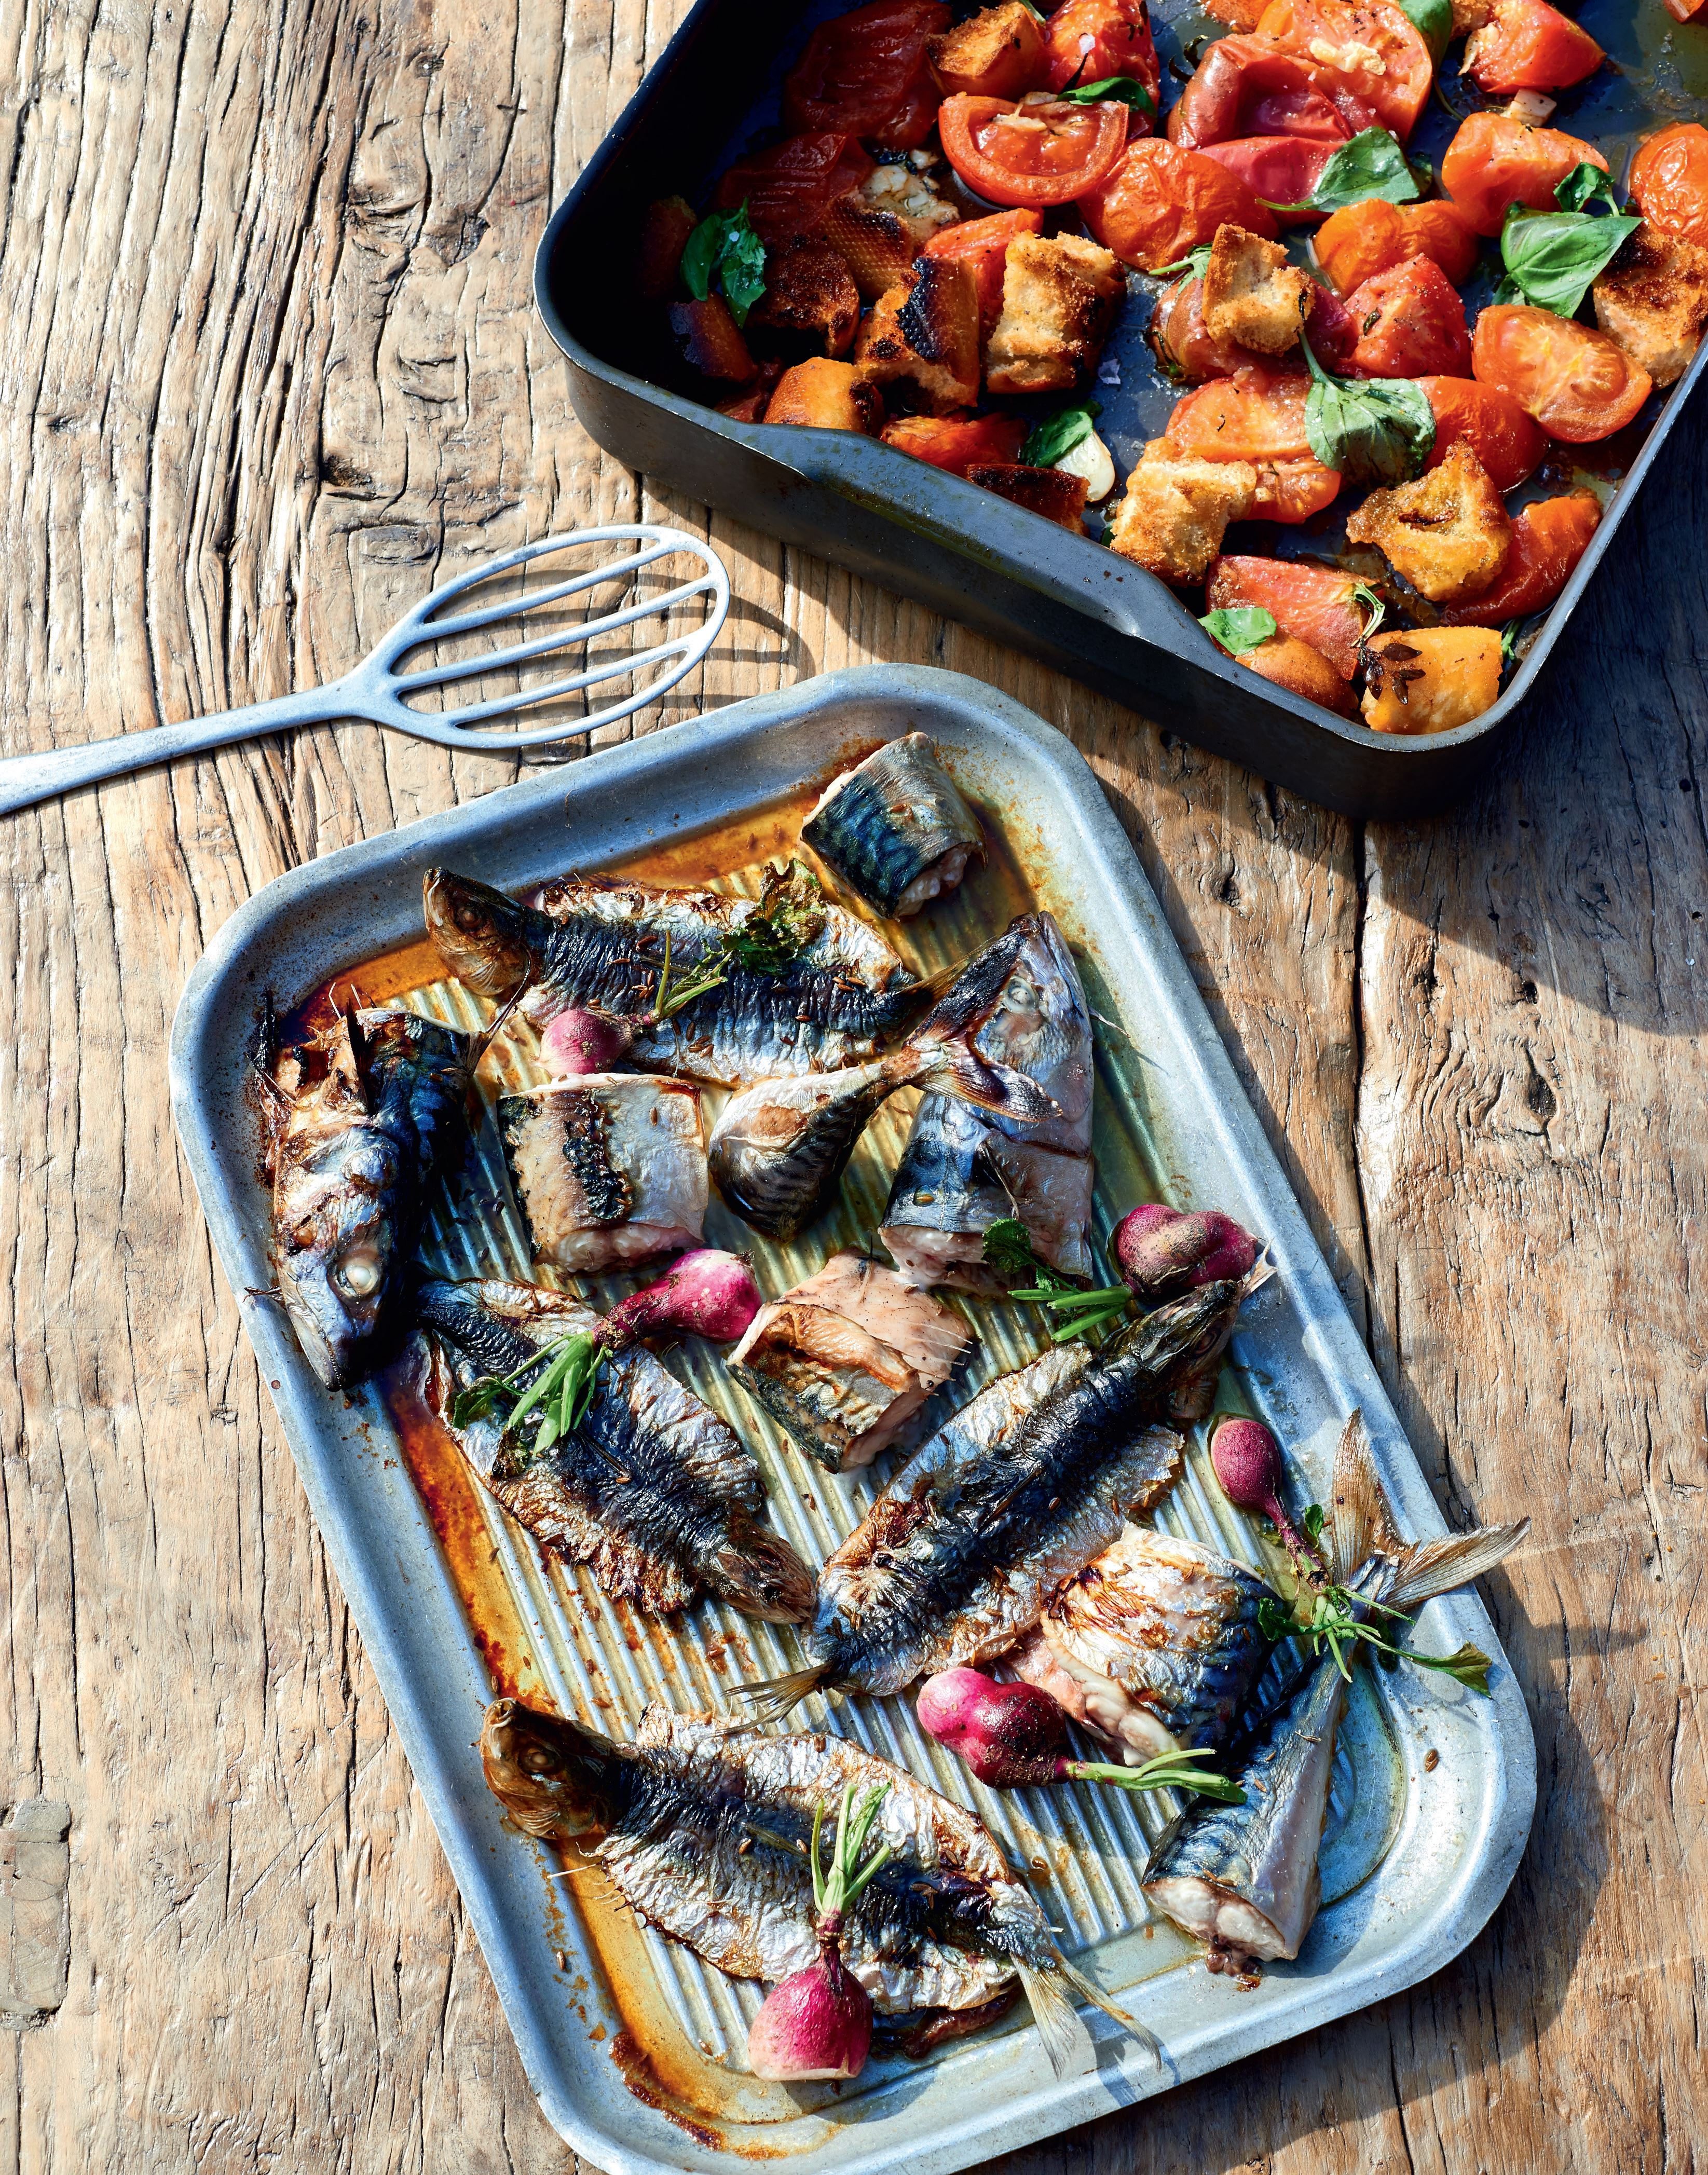 Roasted sardines and mackerel with radishes